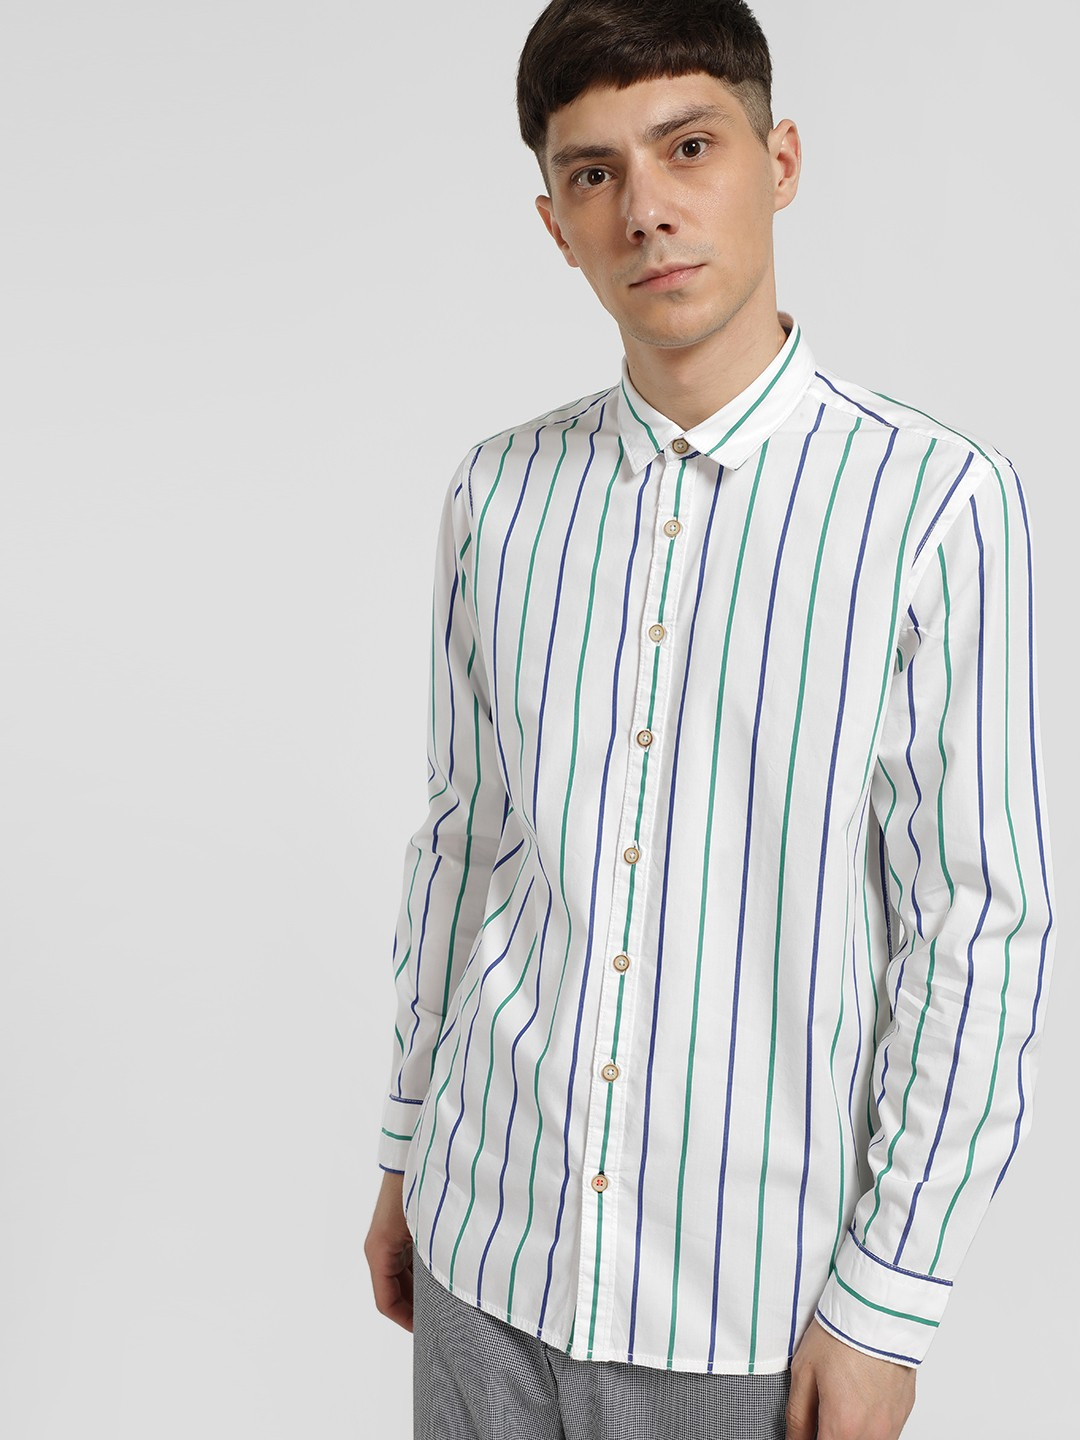 SCULLERS White Vertical Stripe Long Sleeve Shirt 1